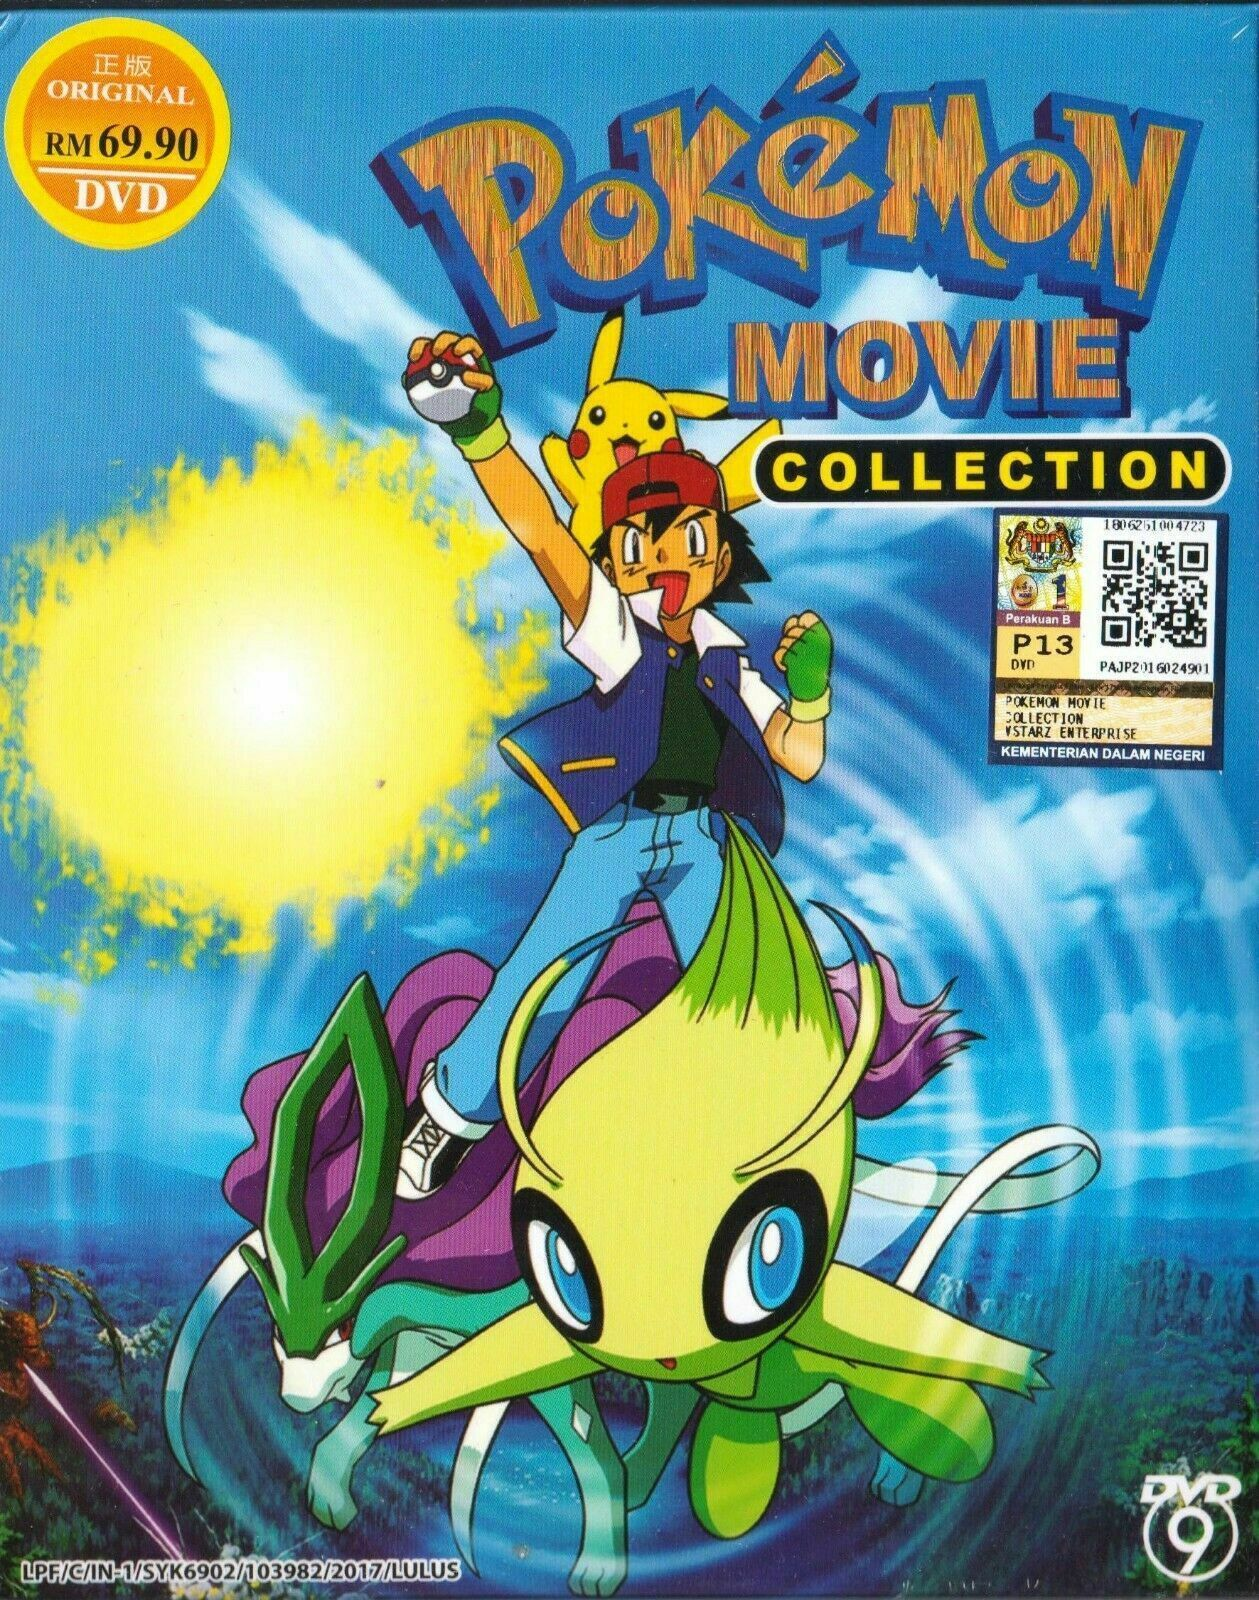 Pokemon The Movie Collection (21 Movies) DVD with English Subtitle Ship From USA